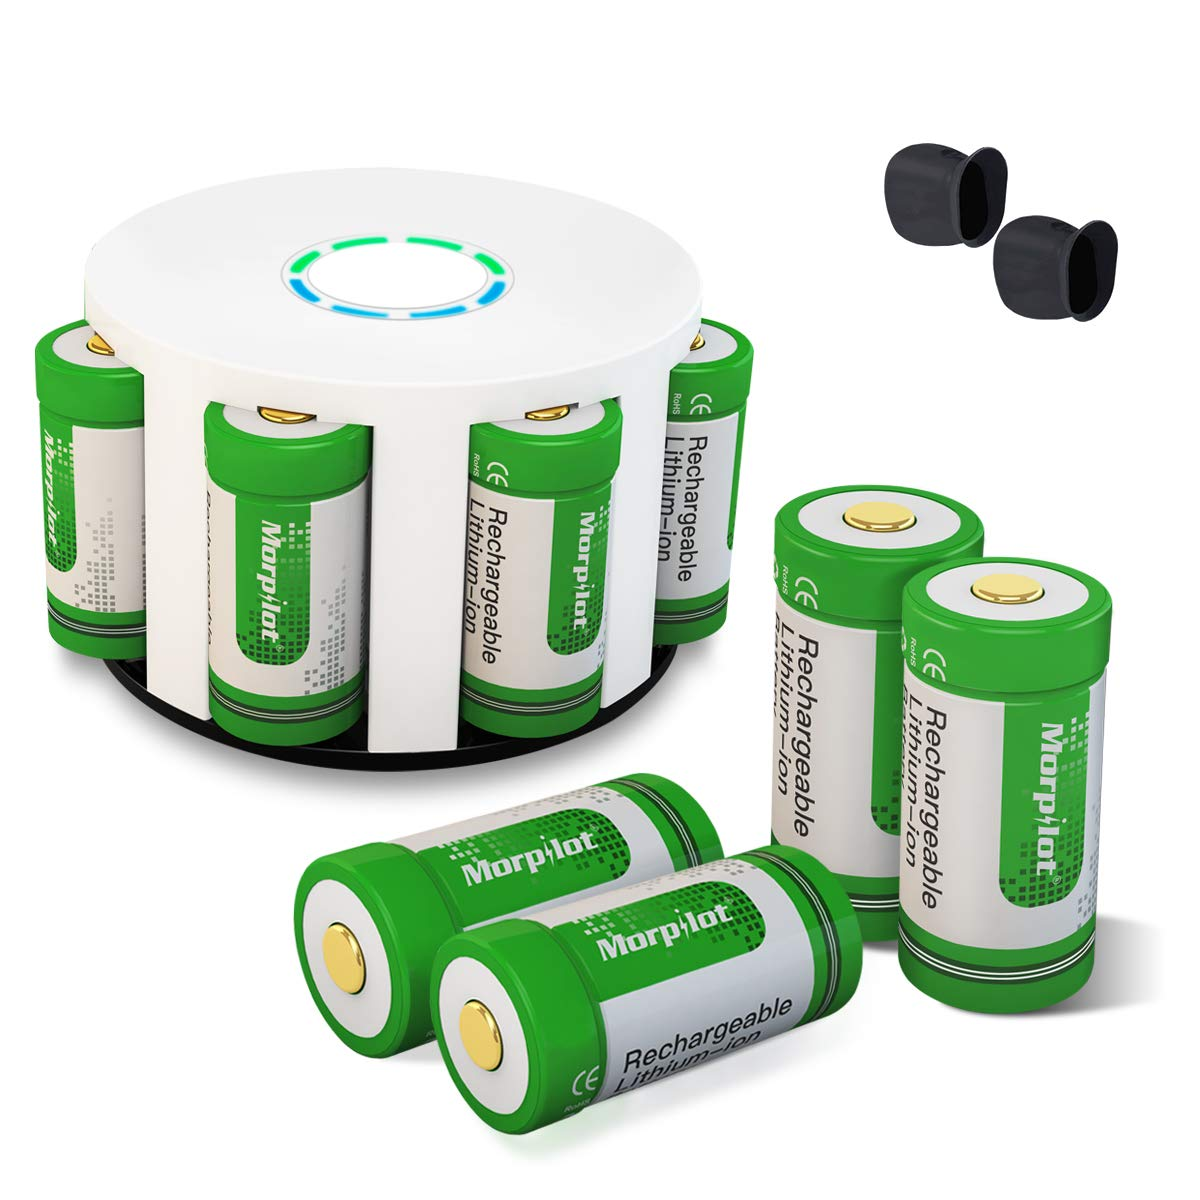 Morpilot RCR123A Rechargeable Batteries And Charger 8Pcs 37V 700mAh Li Ion Battery With 8 Slot For Arlo VMC3030 3230 3330 3430 3530 Security